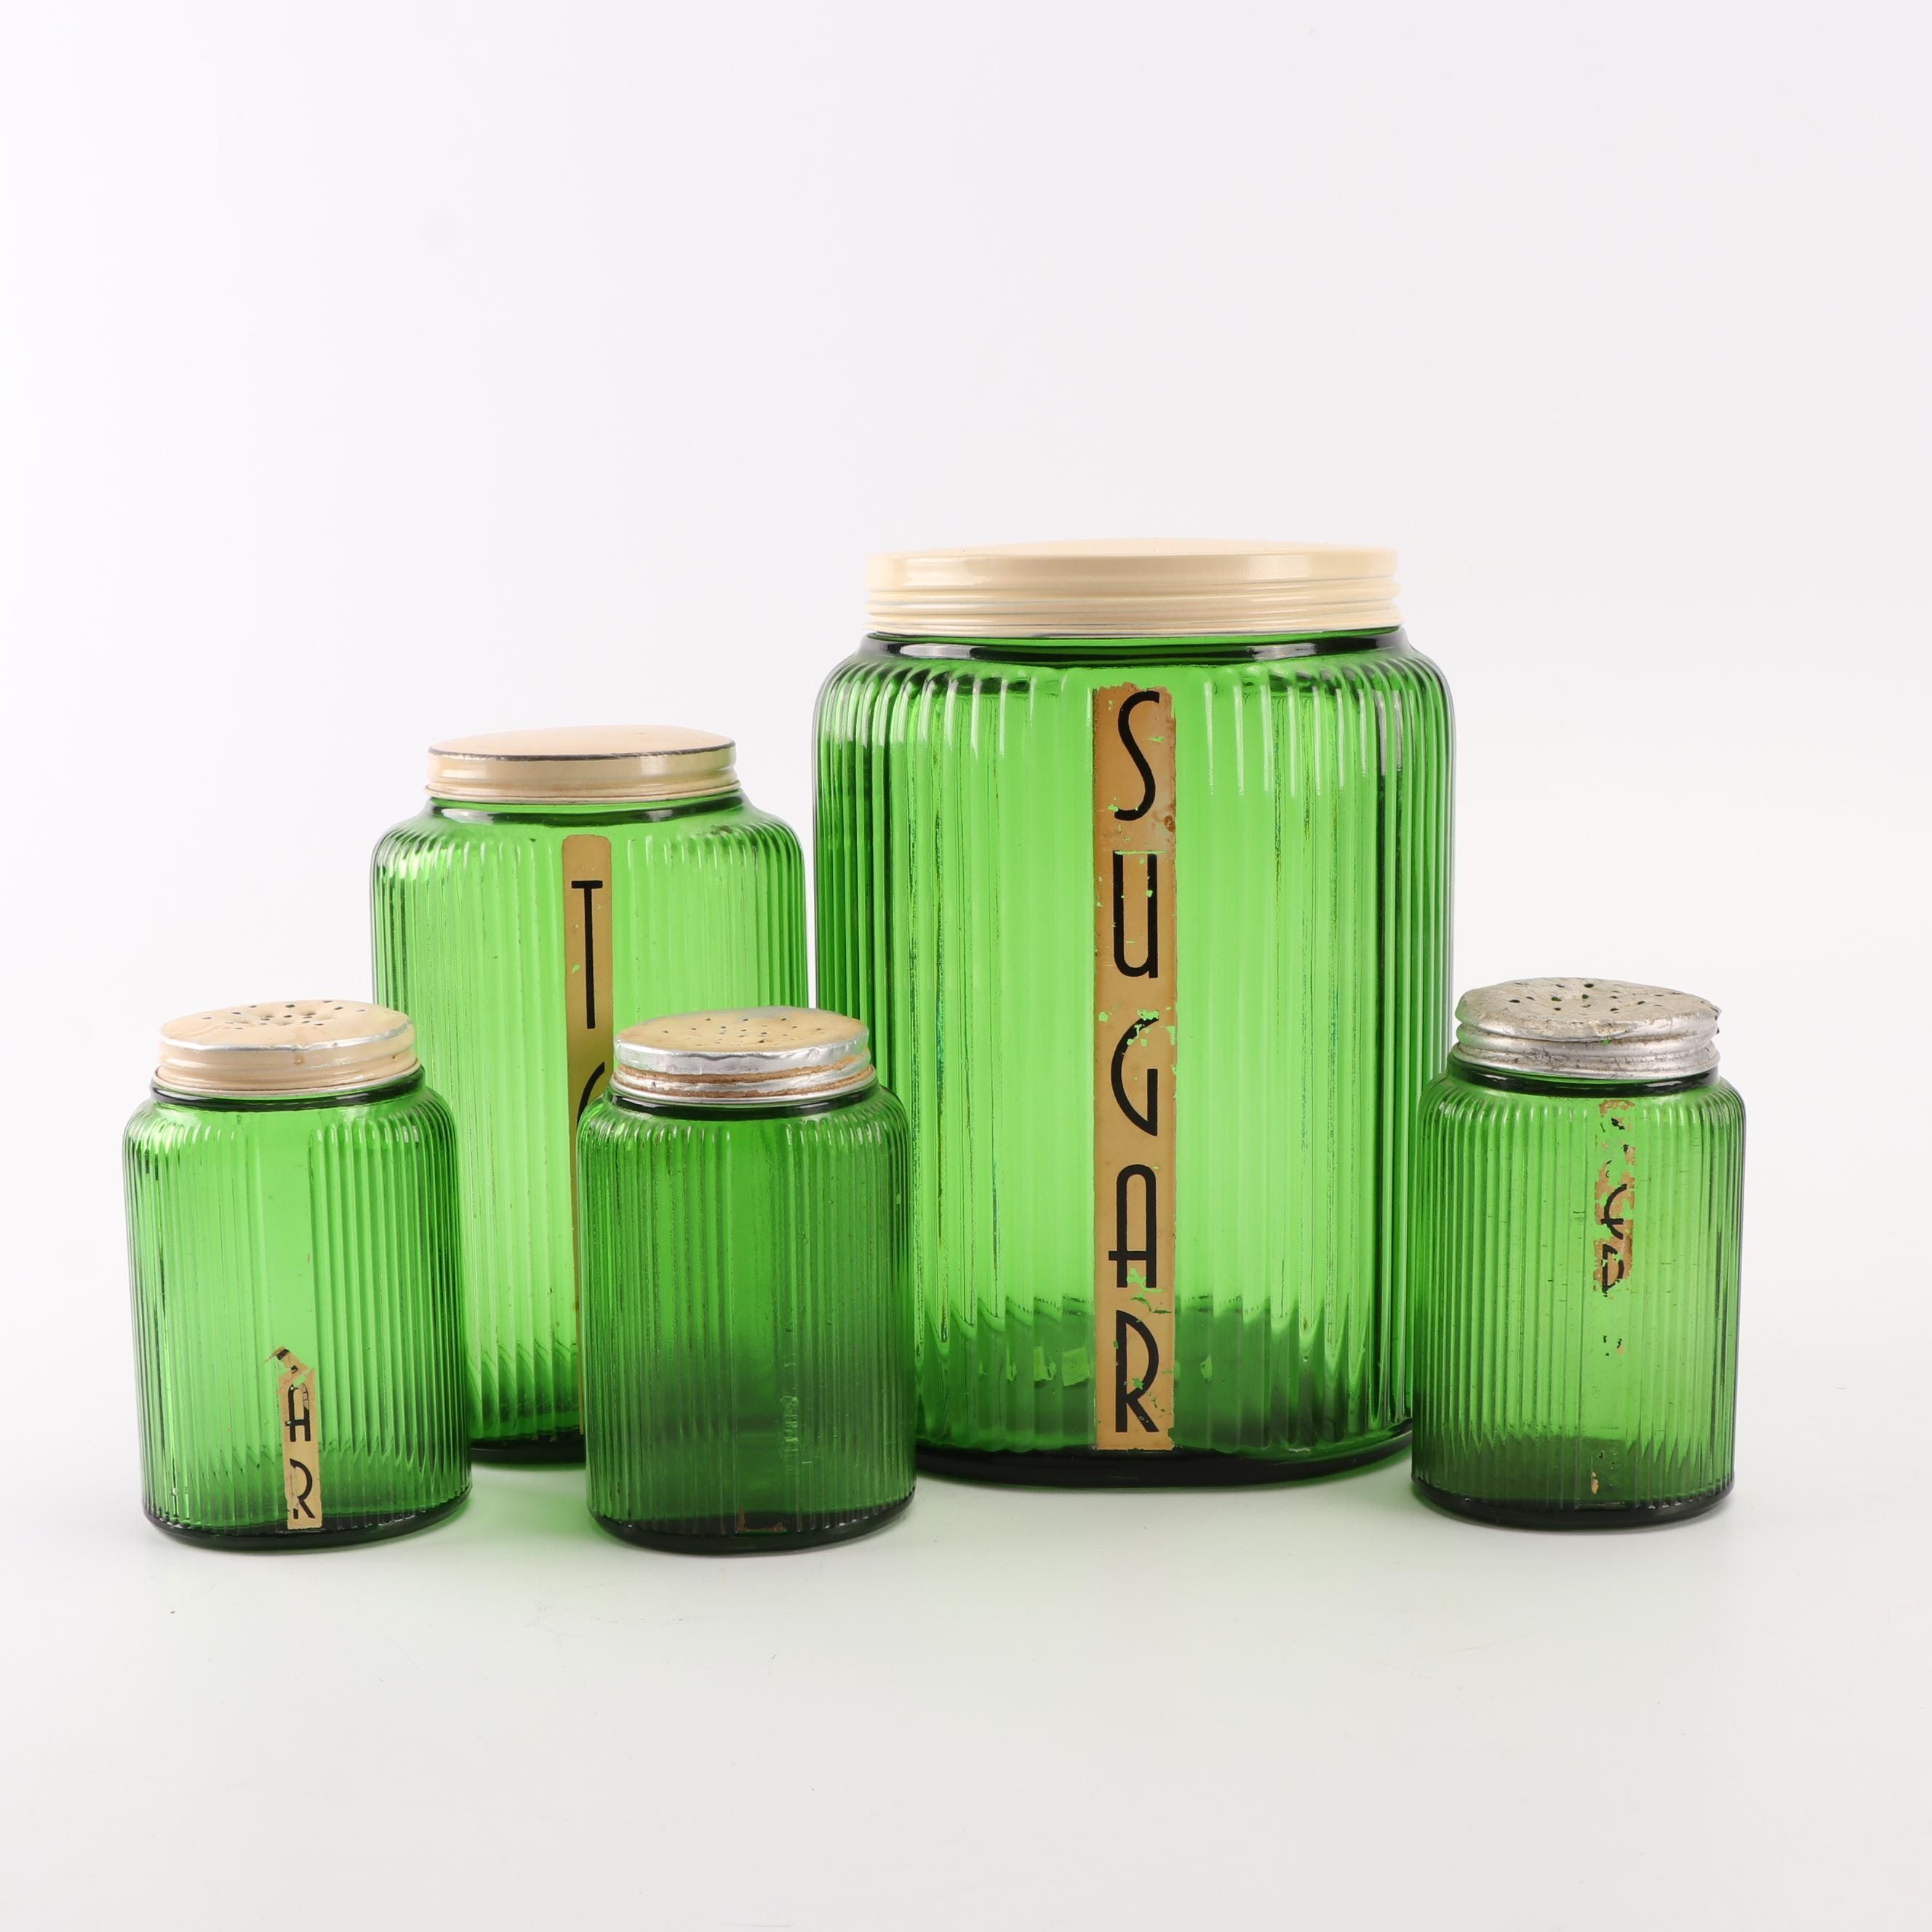 Owens-Illinois Green Depression Glass Shakers and Canisters, circa 1940